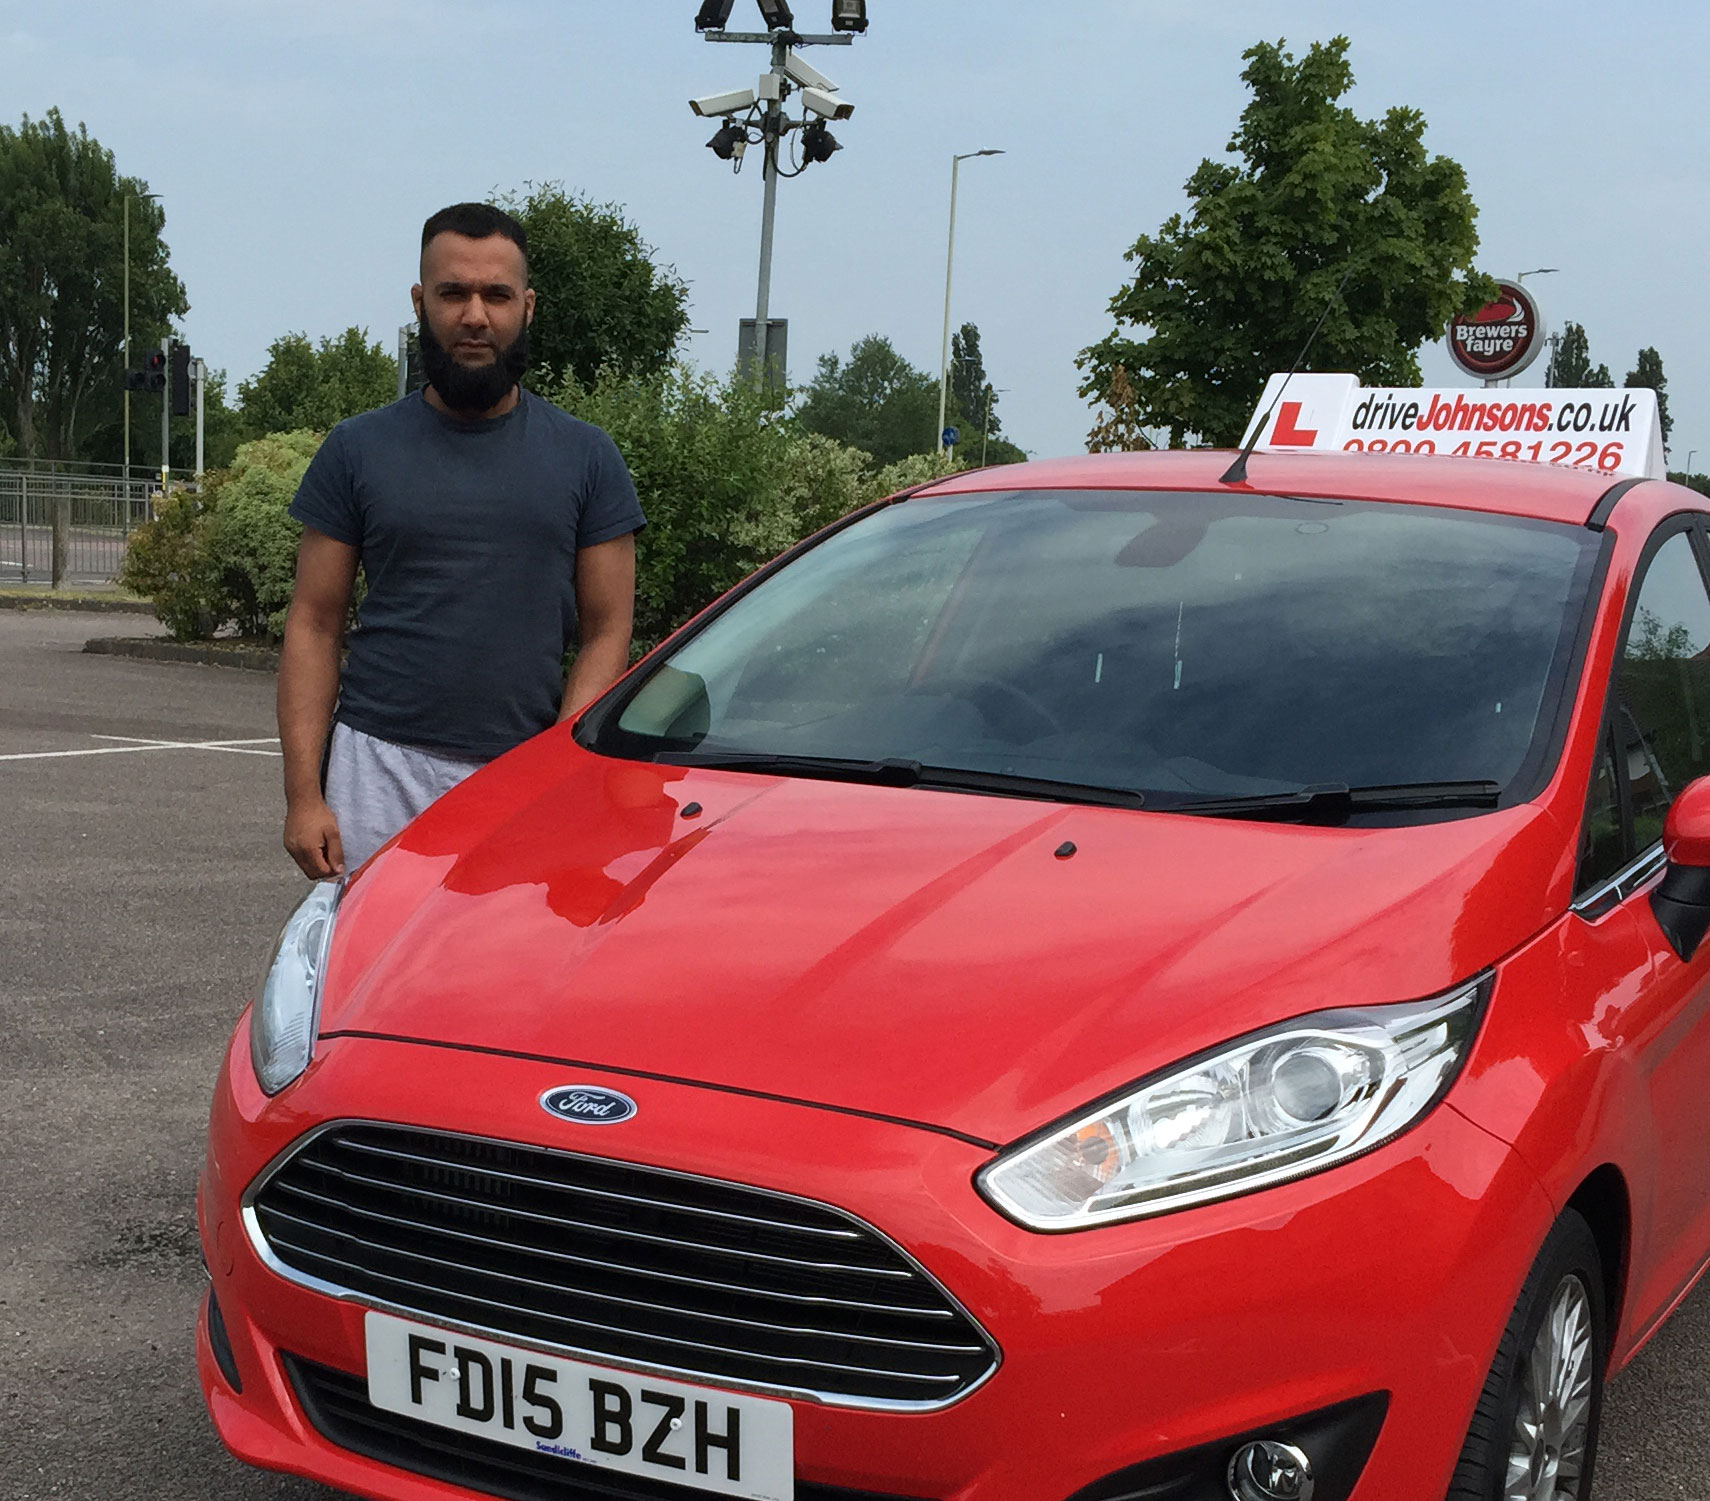 anees driving instructor in Luton and car